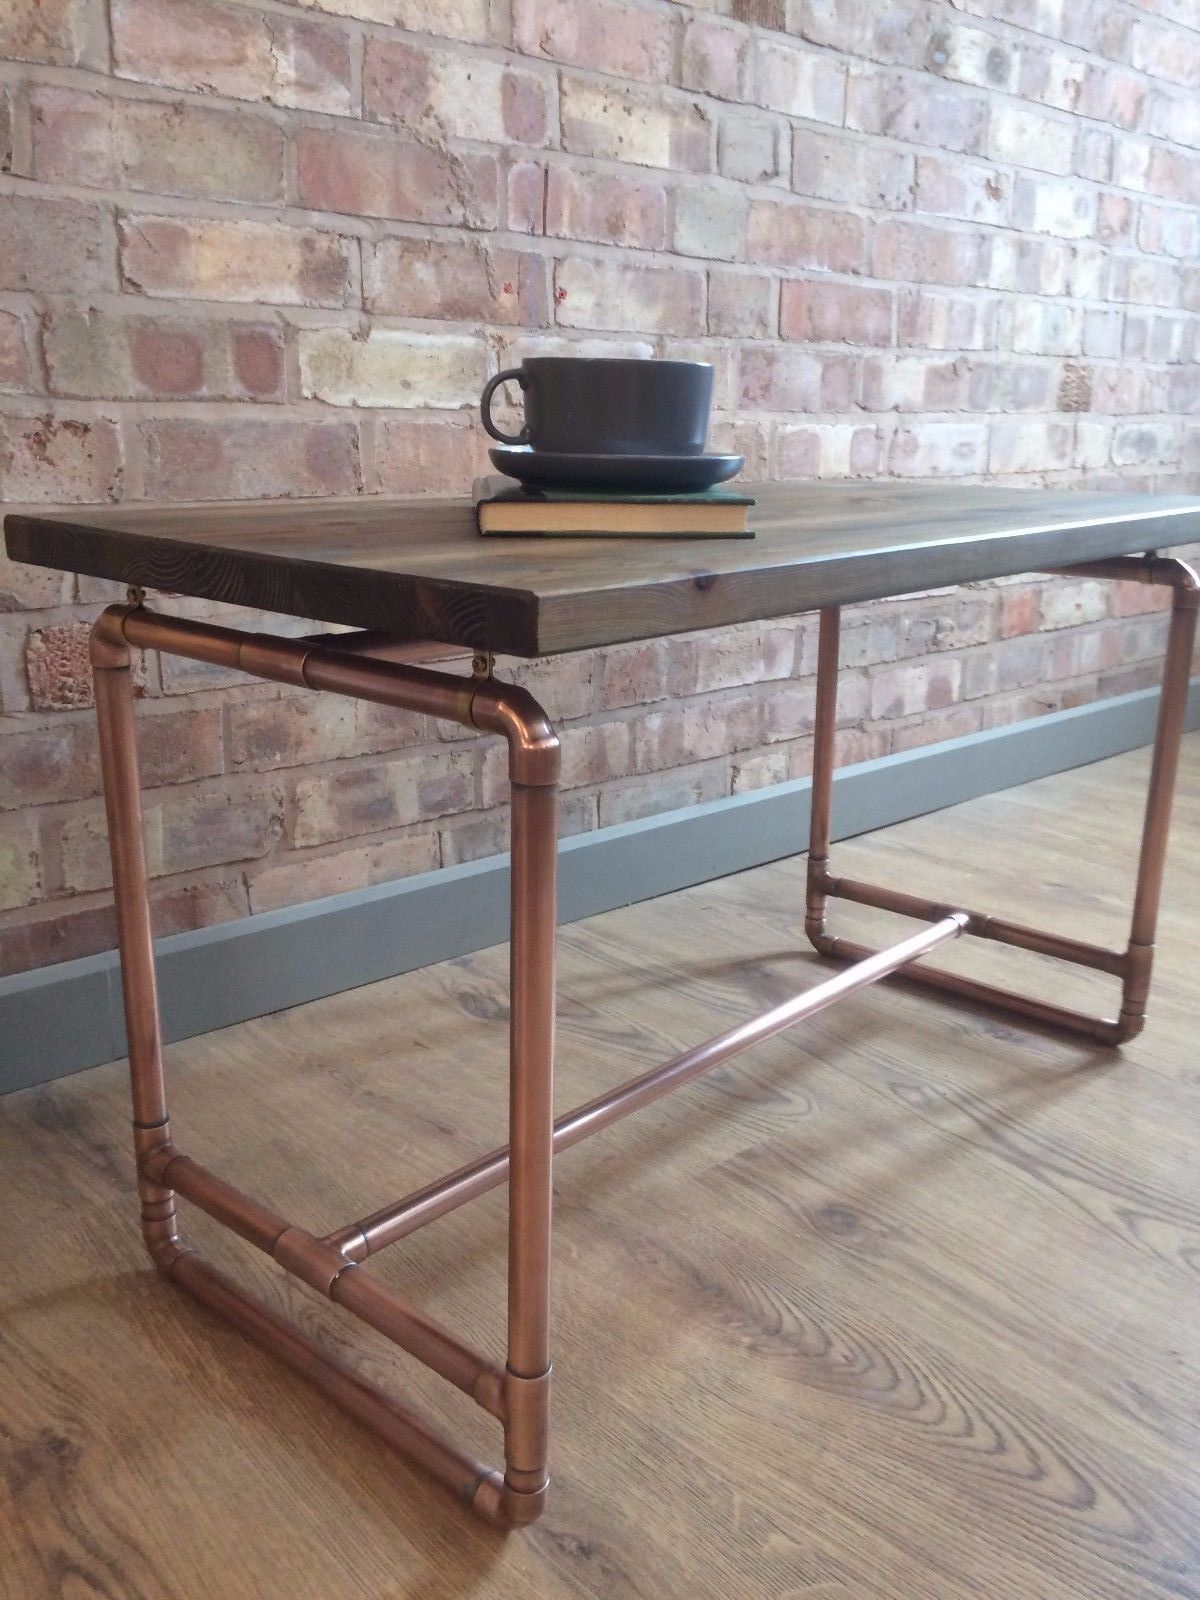 Bespoke Rustic Industrial Handmade Pine and Copper Pipe Coffee